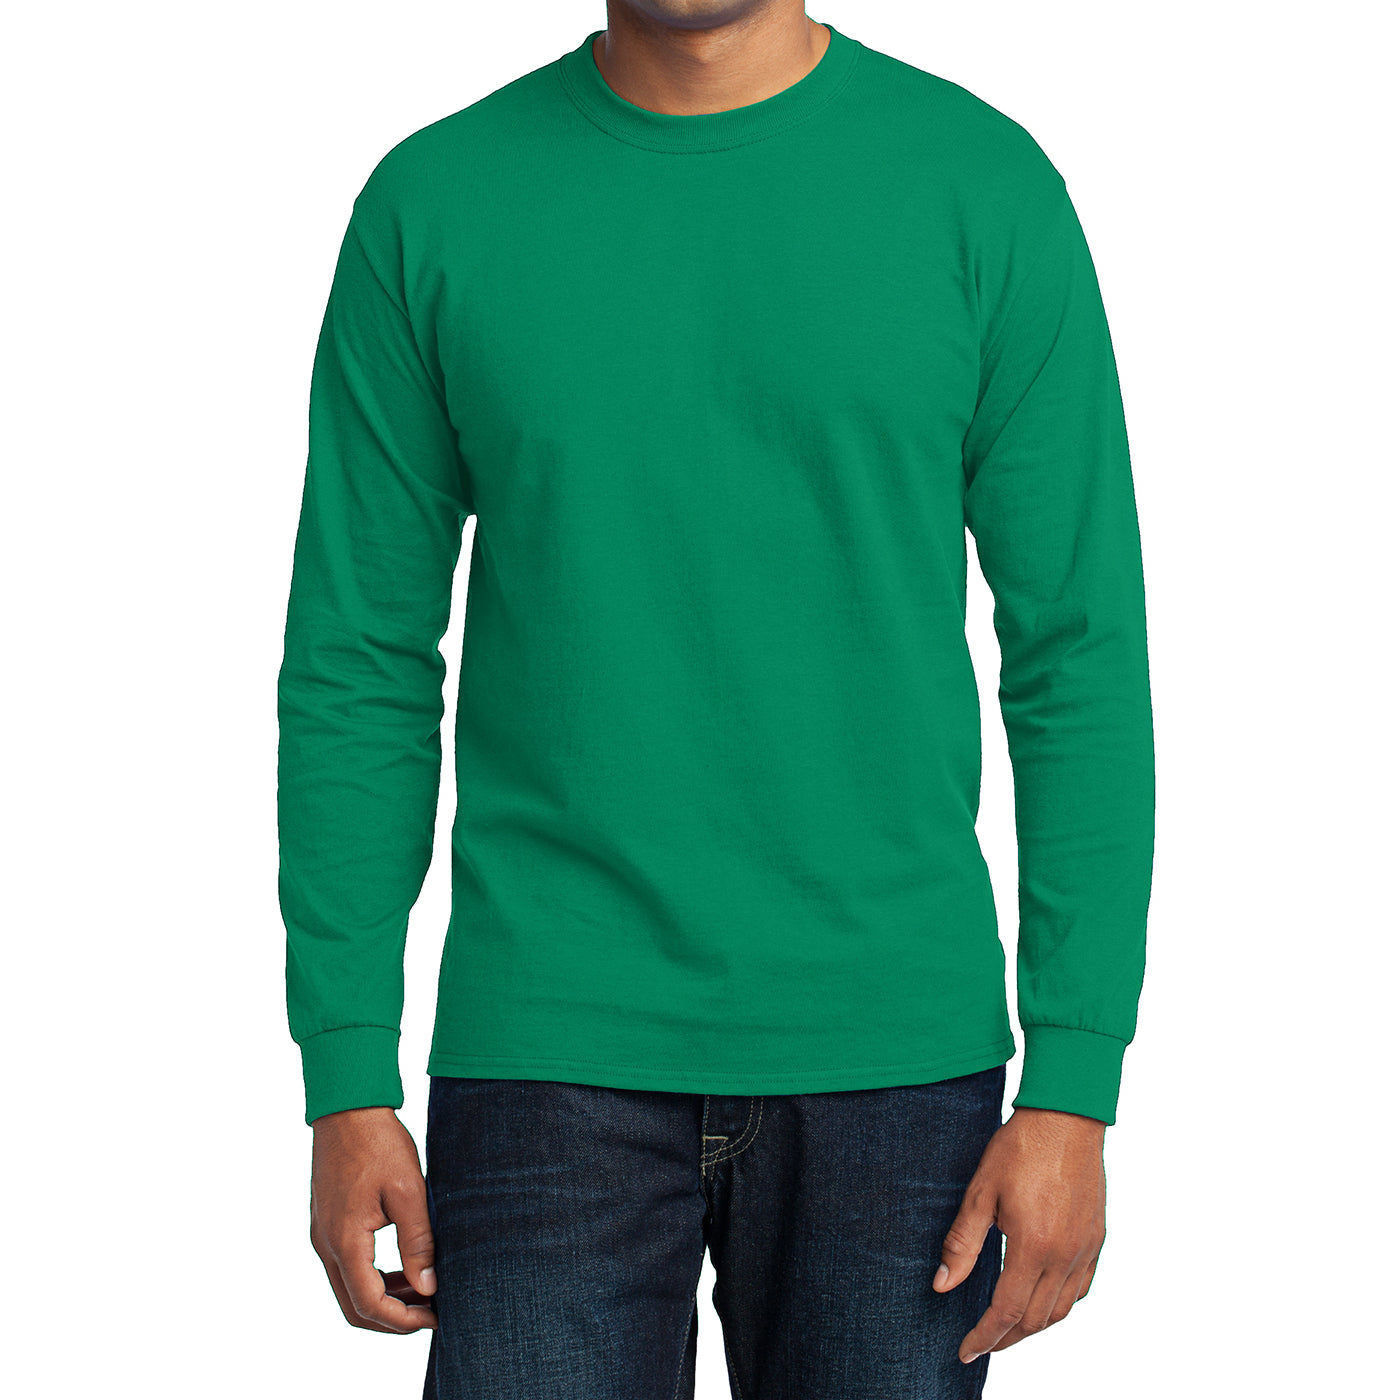 Men's Long Sleeve Core Blend Tee - Kelly – Front